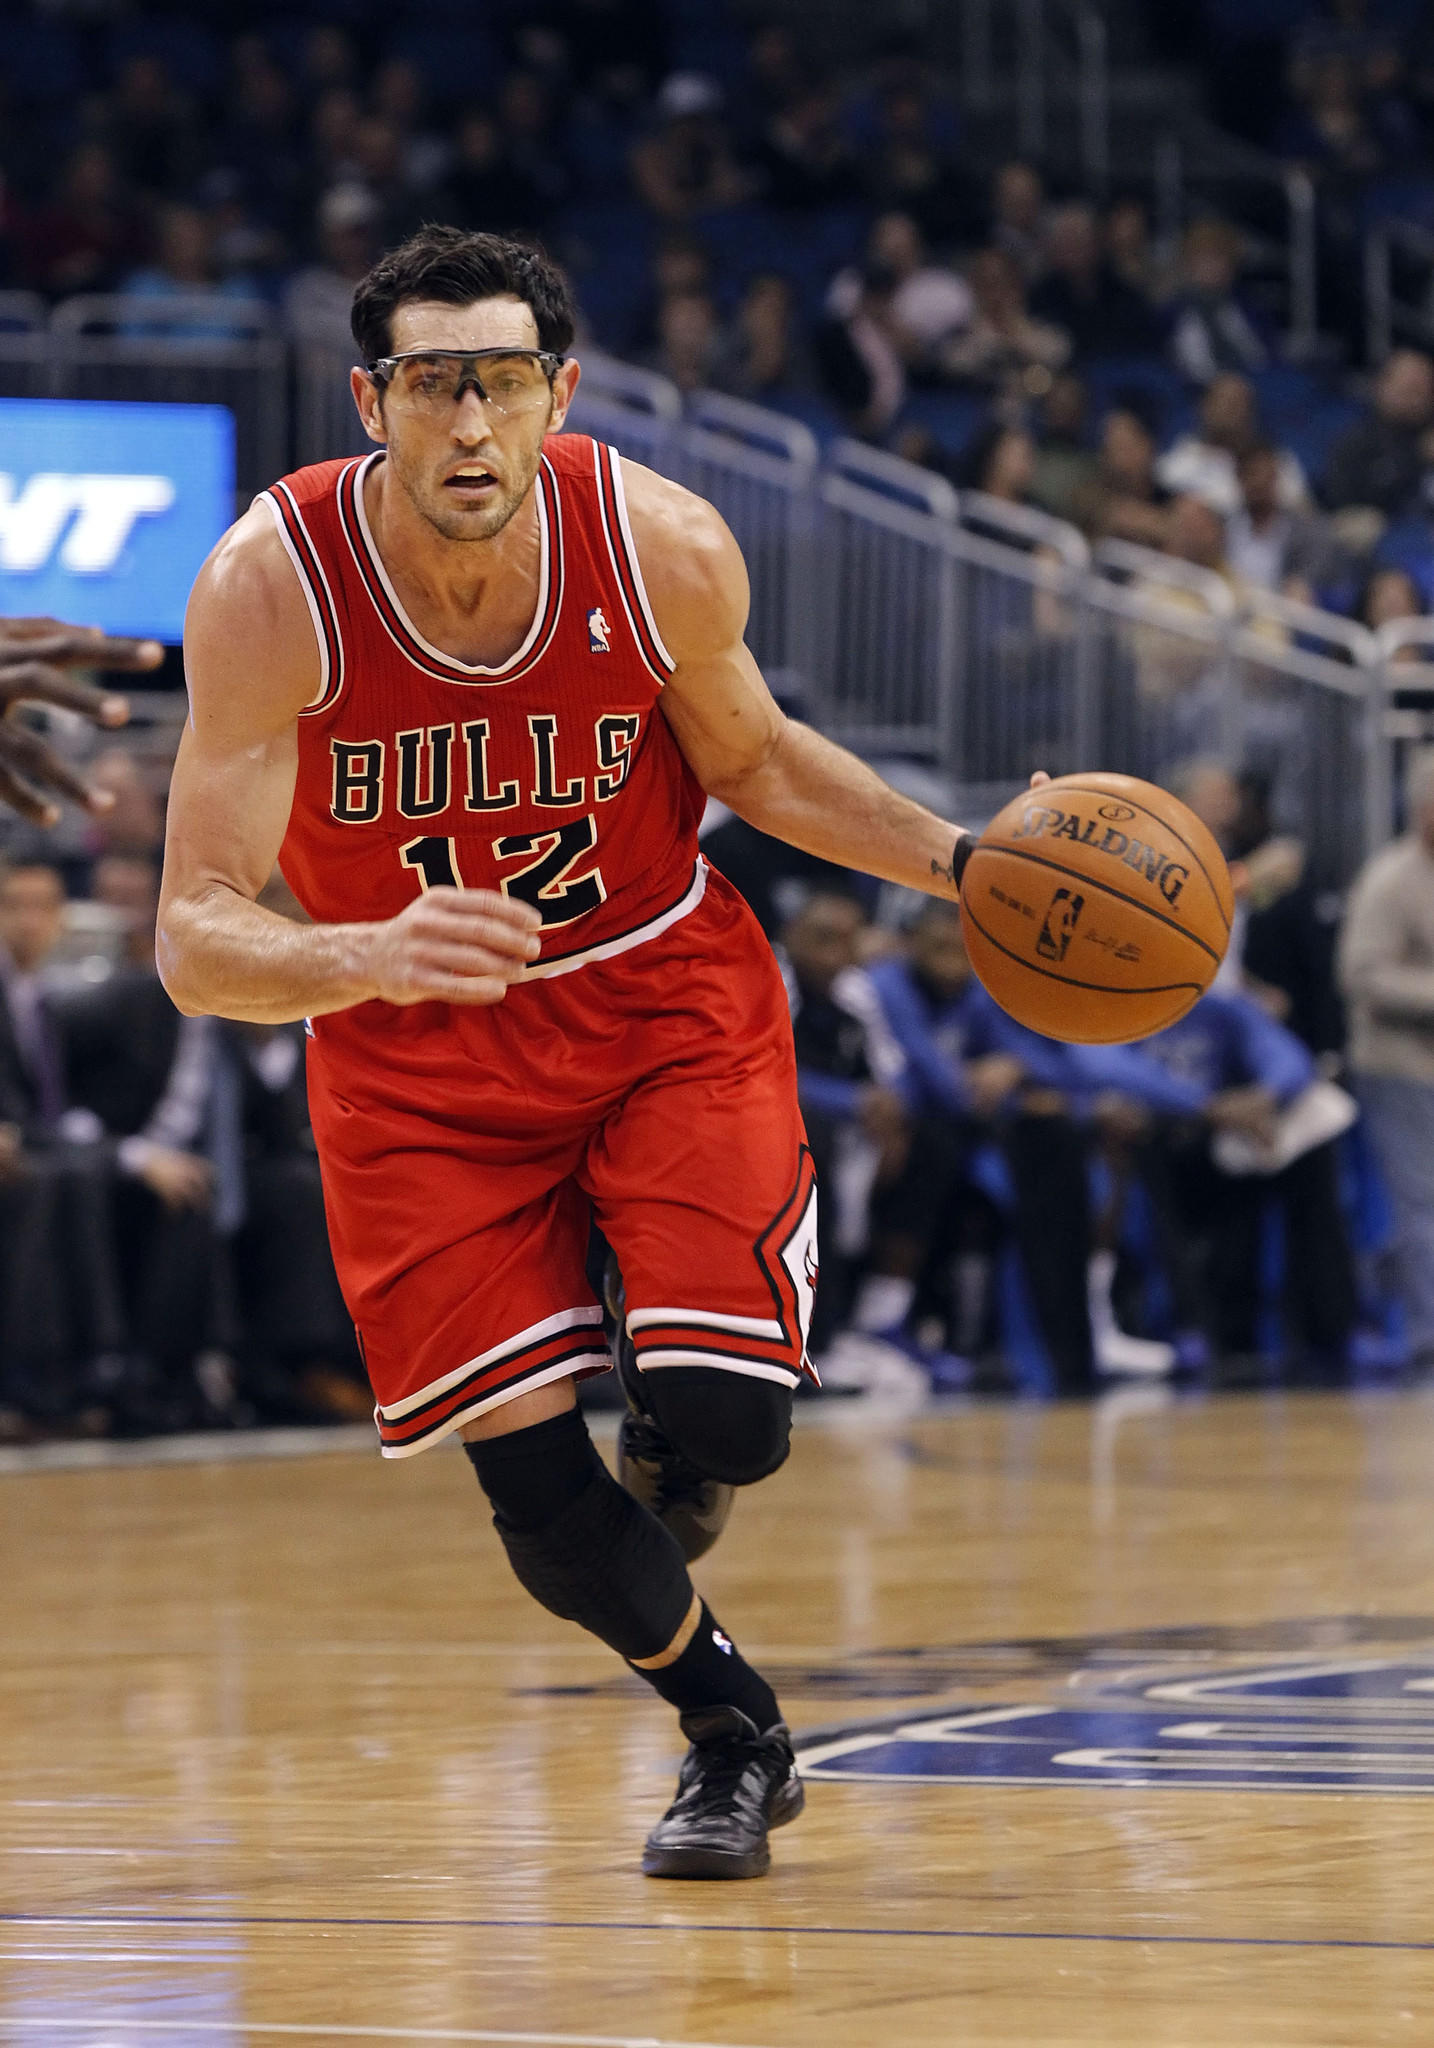 Chicago Bulls shooting guard Kirk Hinrich.